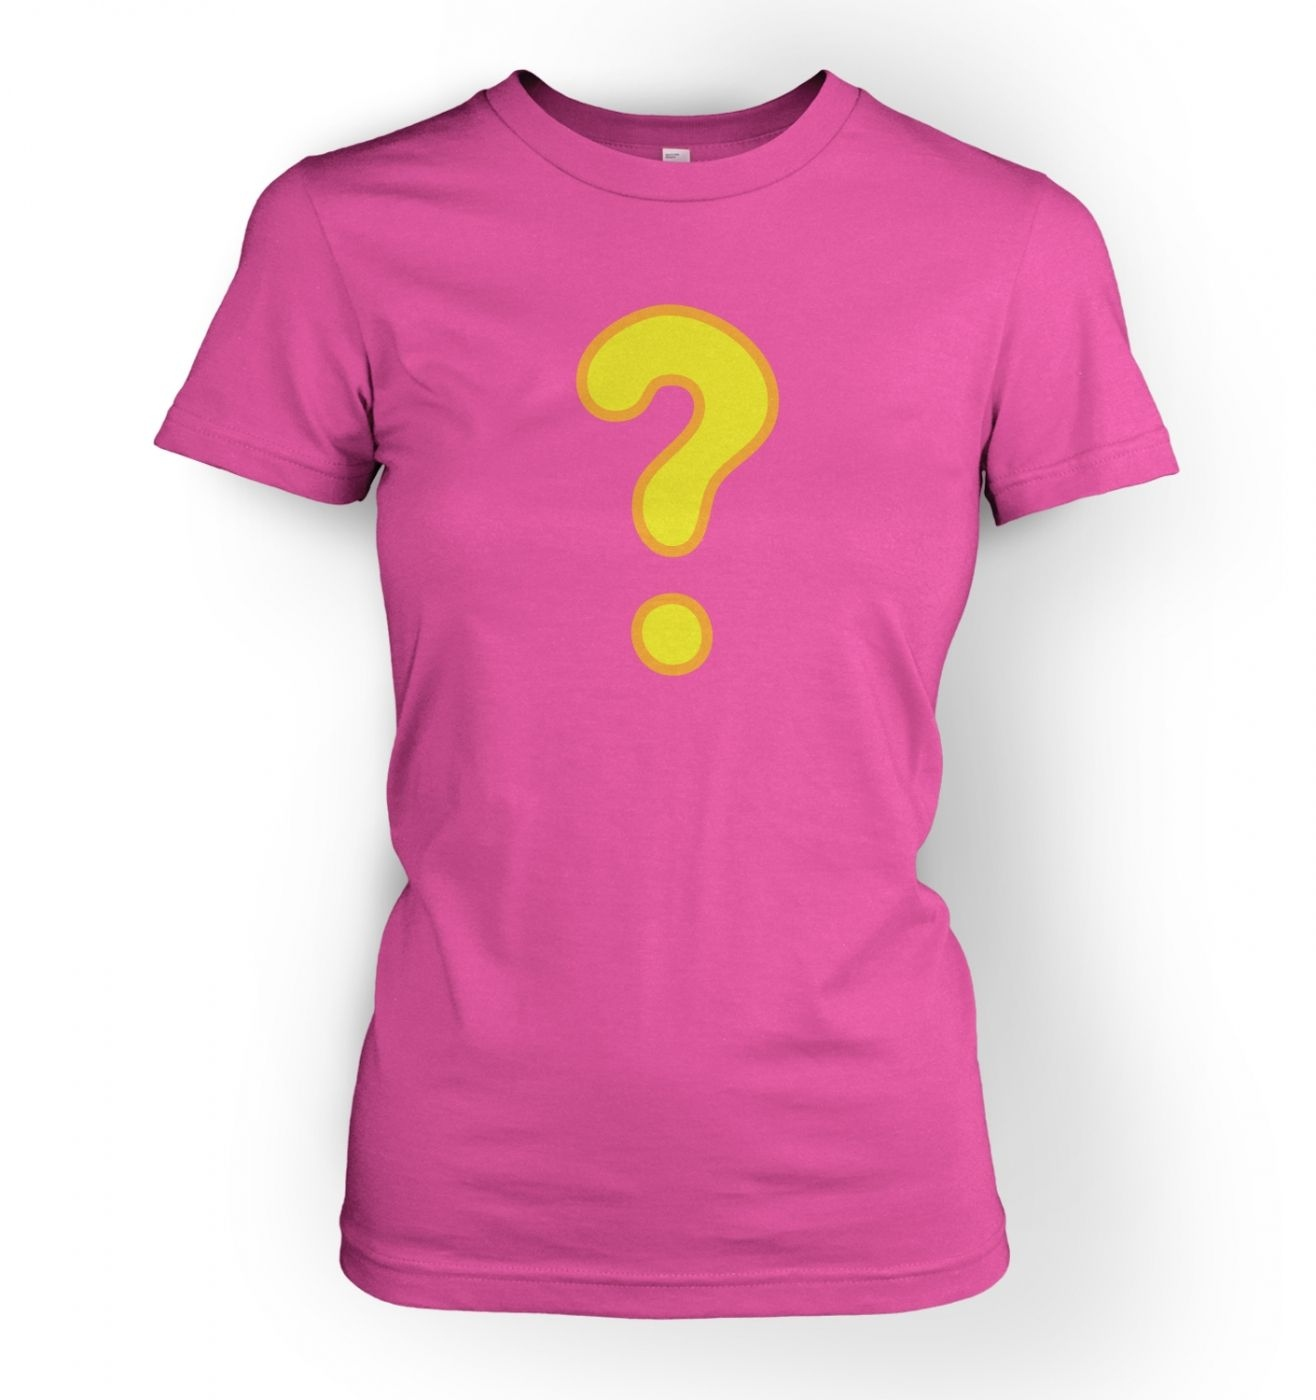 Women's quest Question Mark t-shirt - Inspired by World of Warcraft